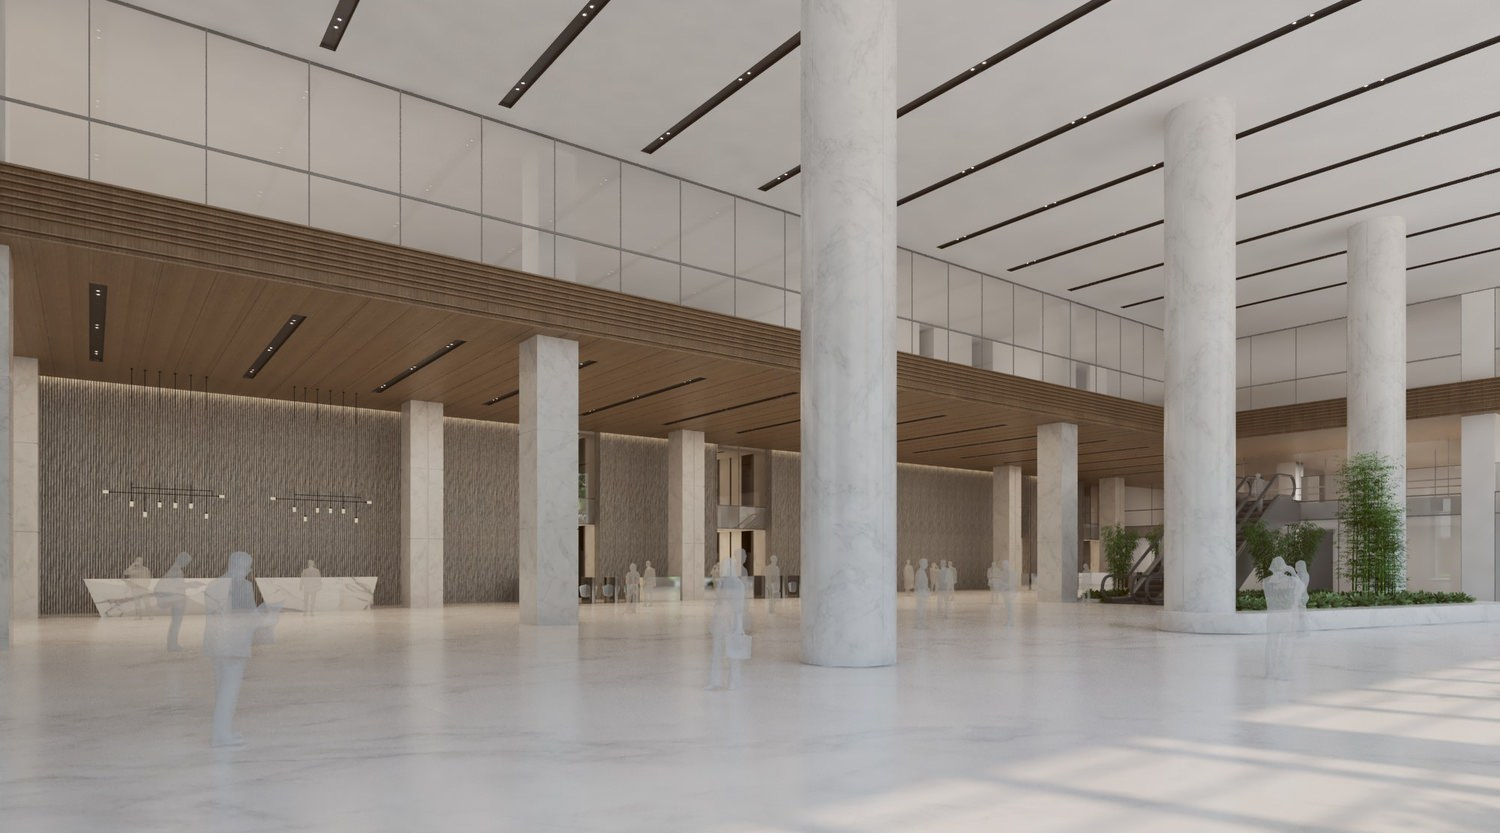 A large white marbled lobby full of columns and tiles that is within a big building.